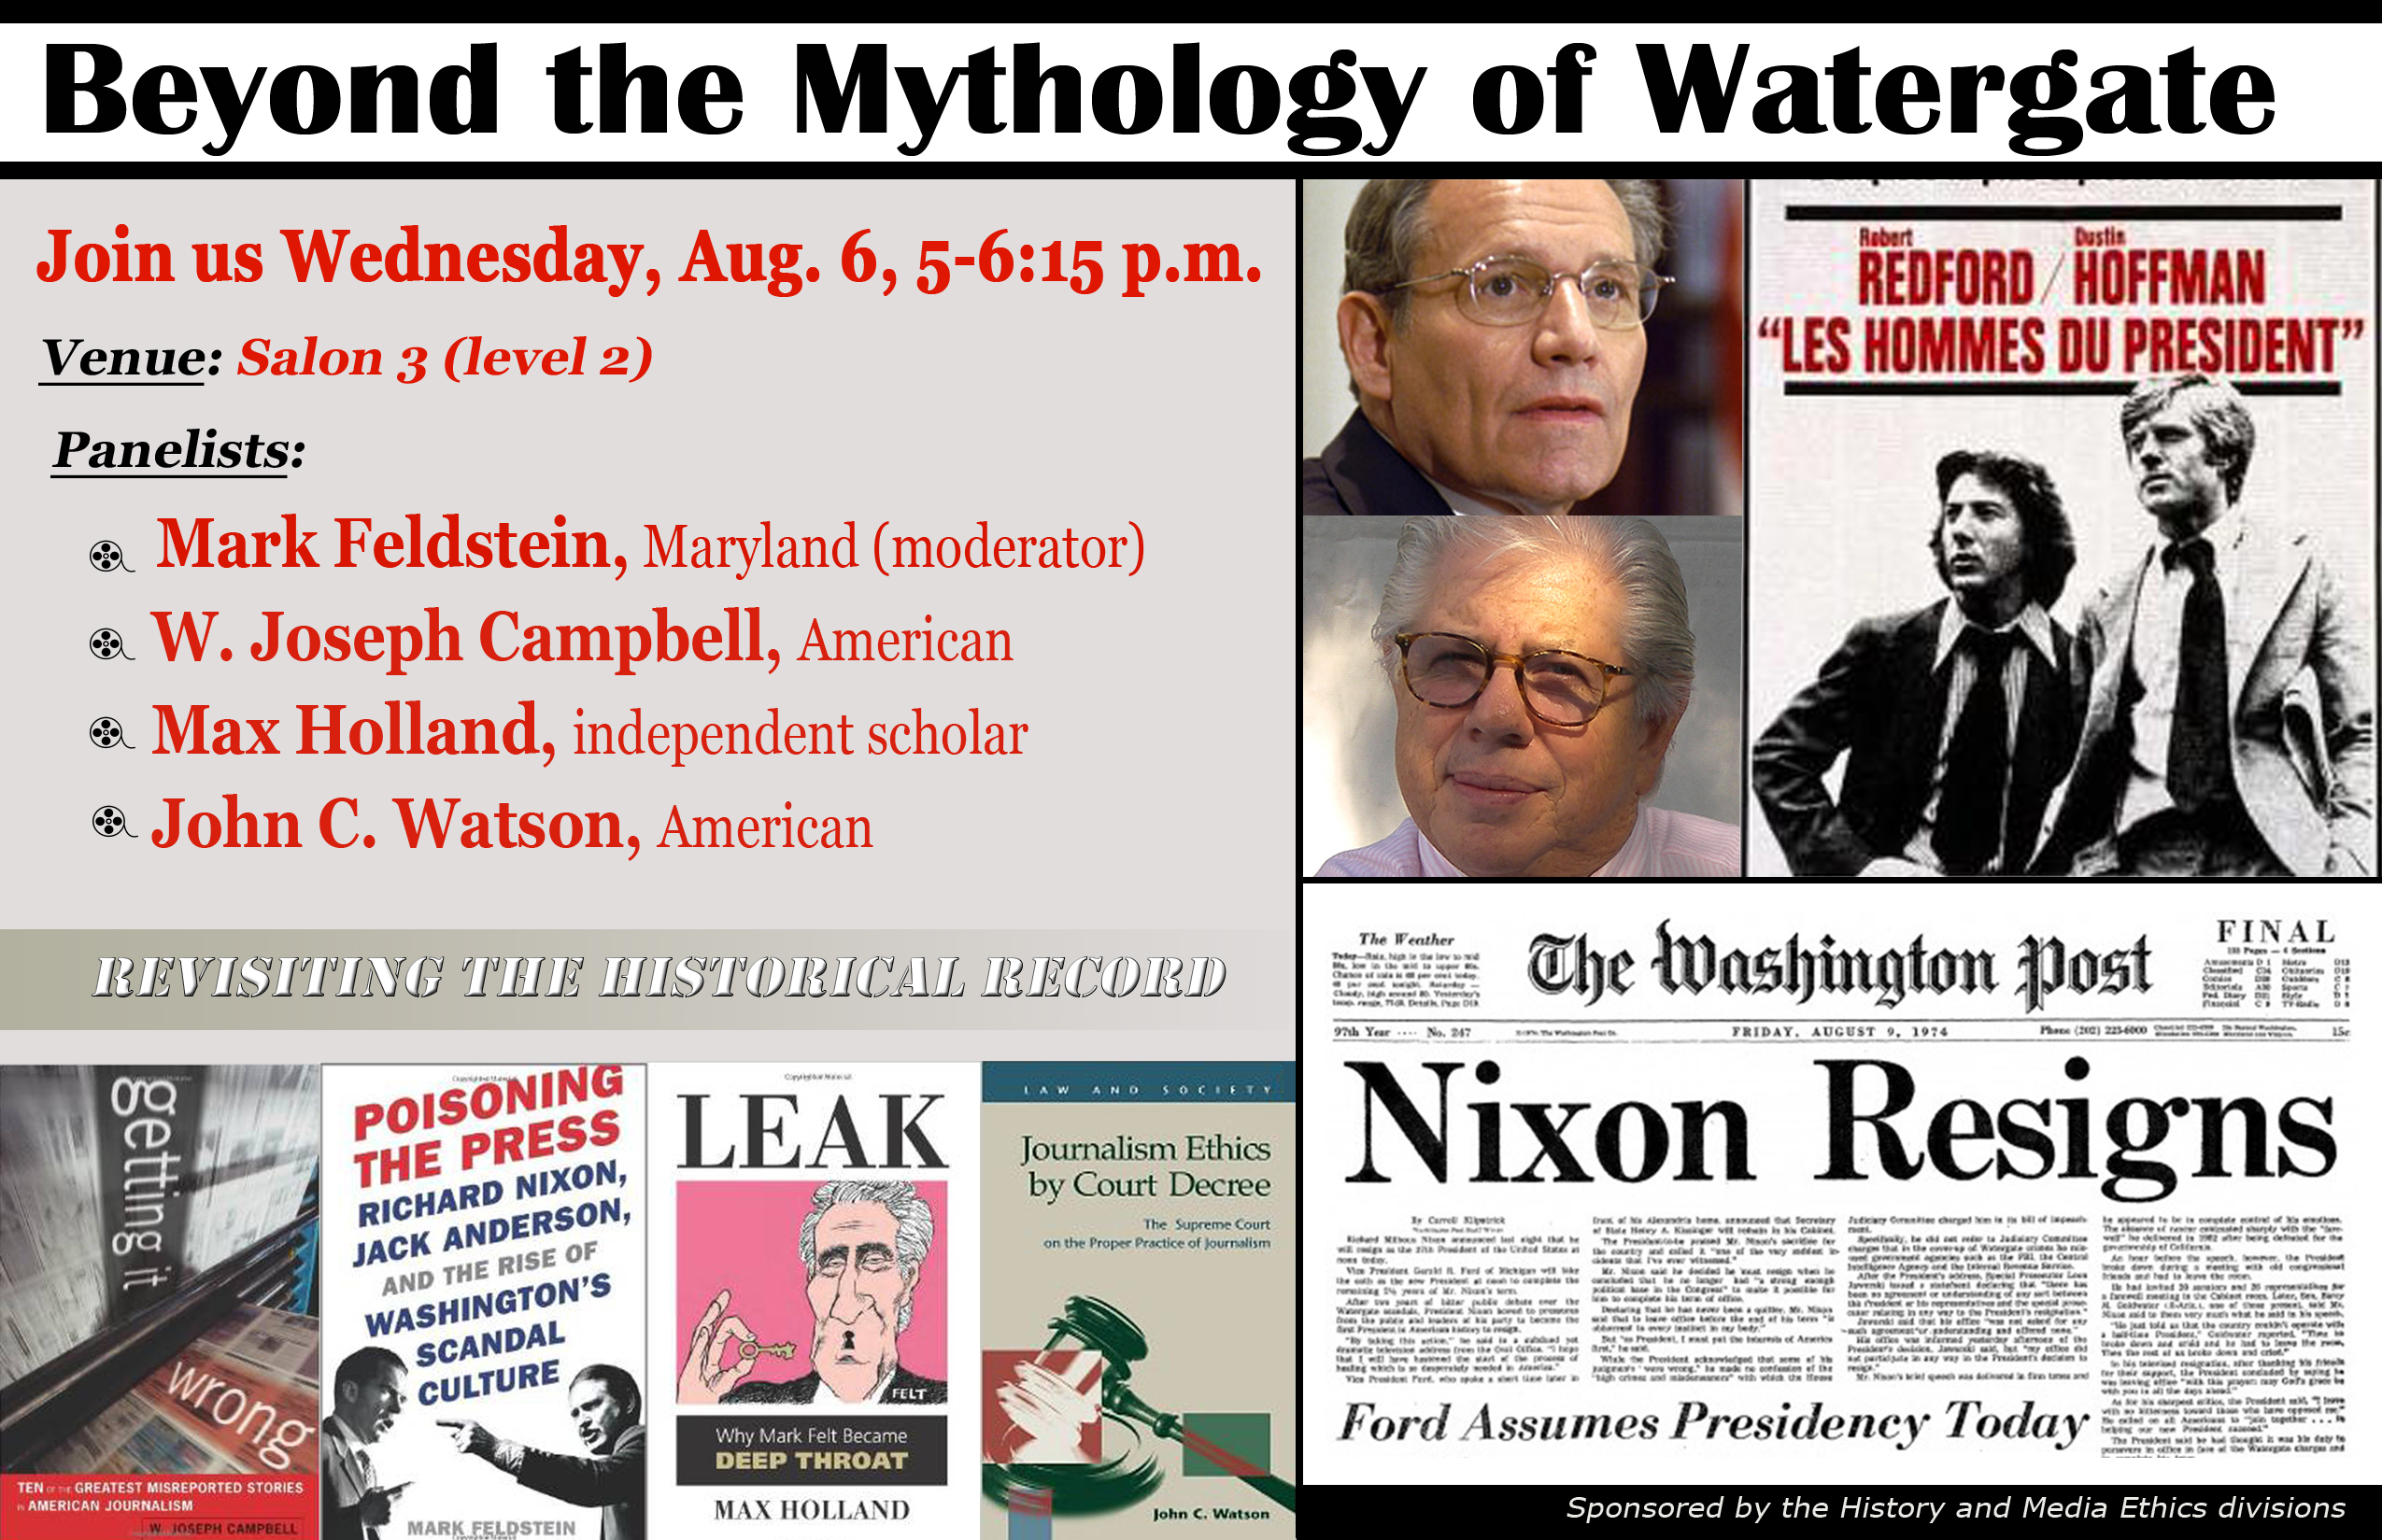 What subject could I use for a long essay on President Nixon? Or Watergate?